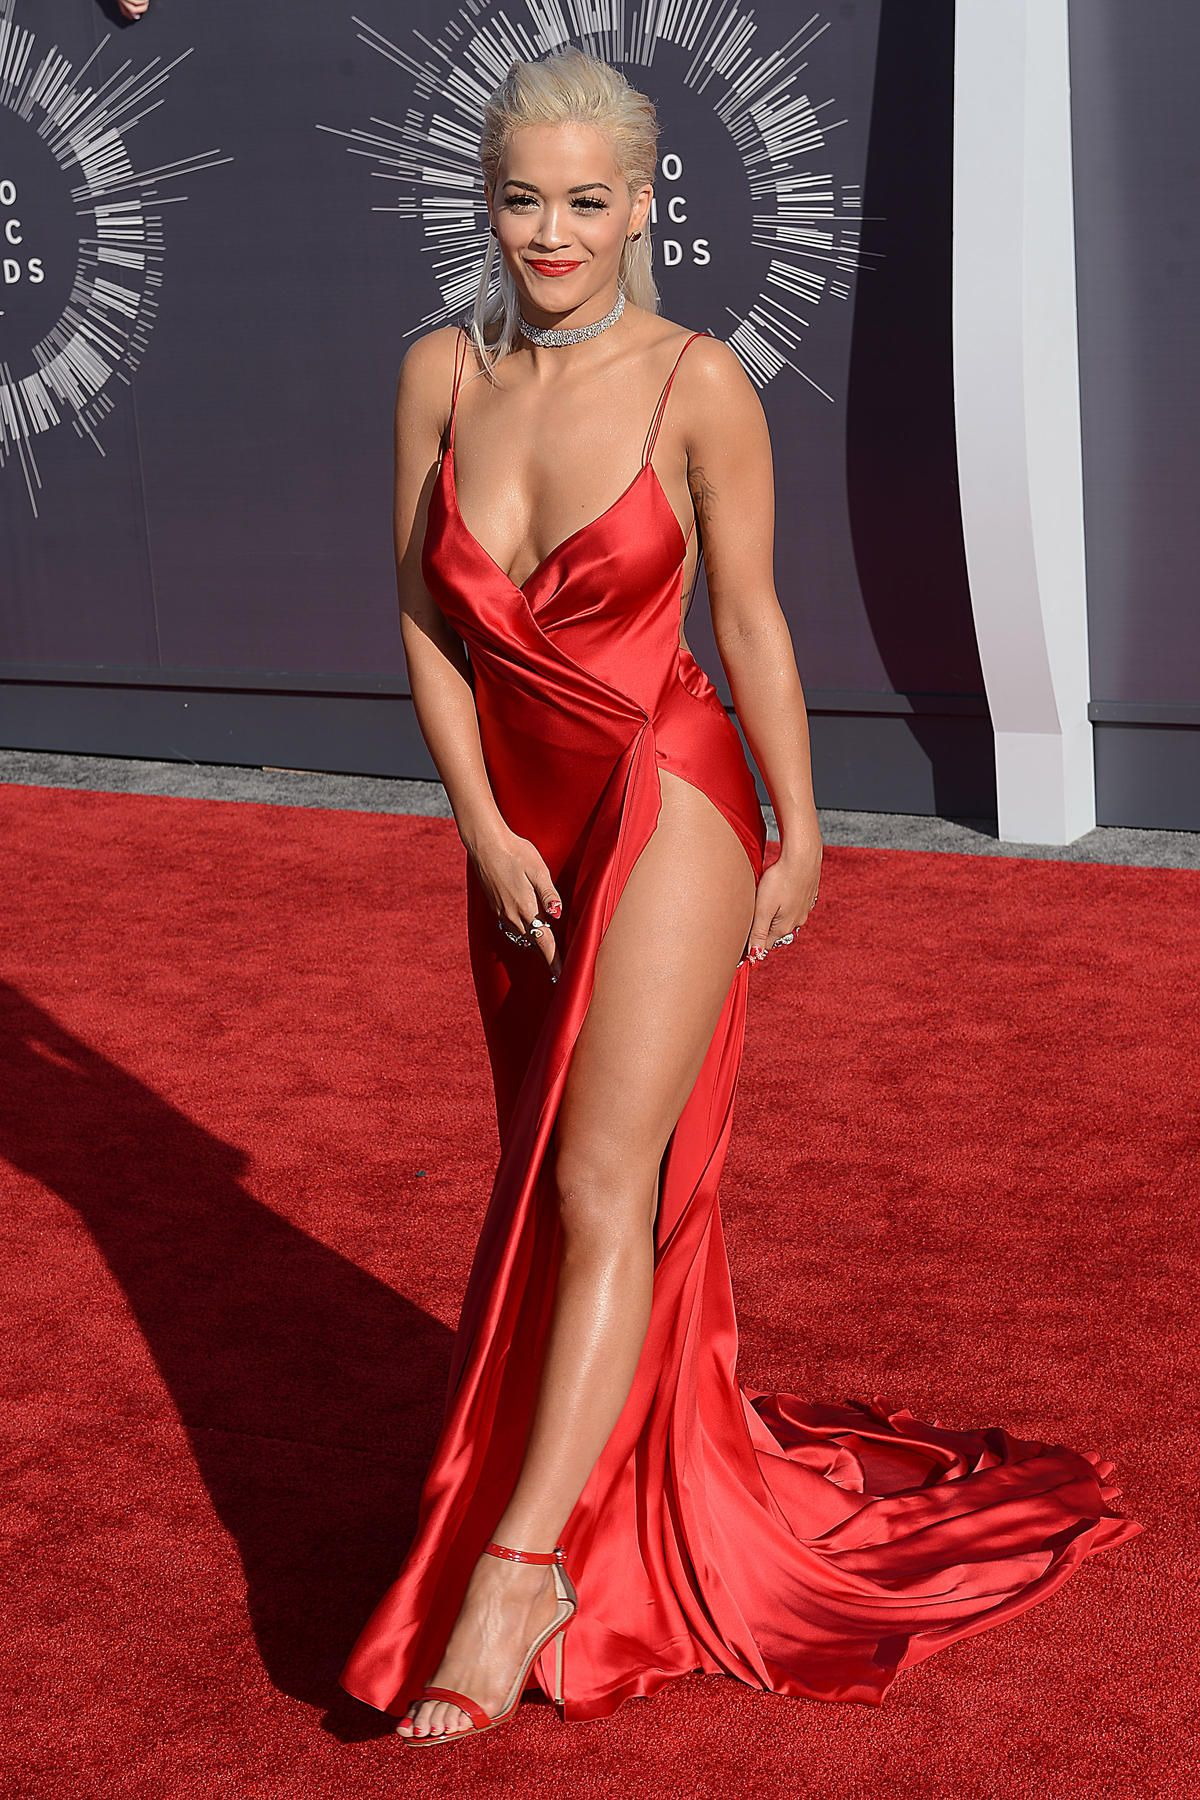 Mtv Vmas Hottest Red Carpet Looks Of All Time Red Carpet Looks Dress Vivienne Red Carpet